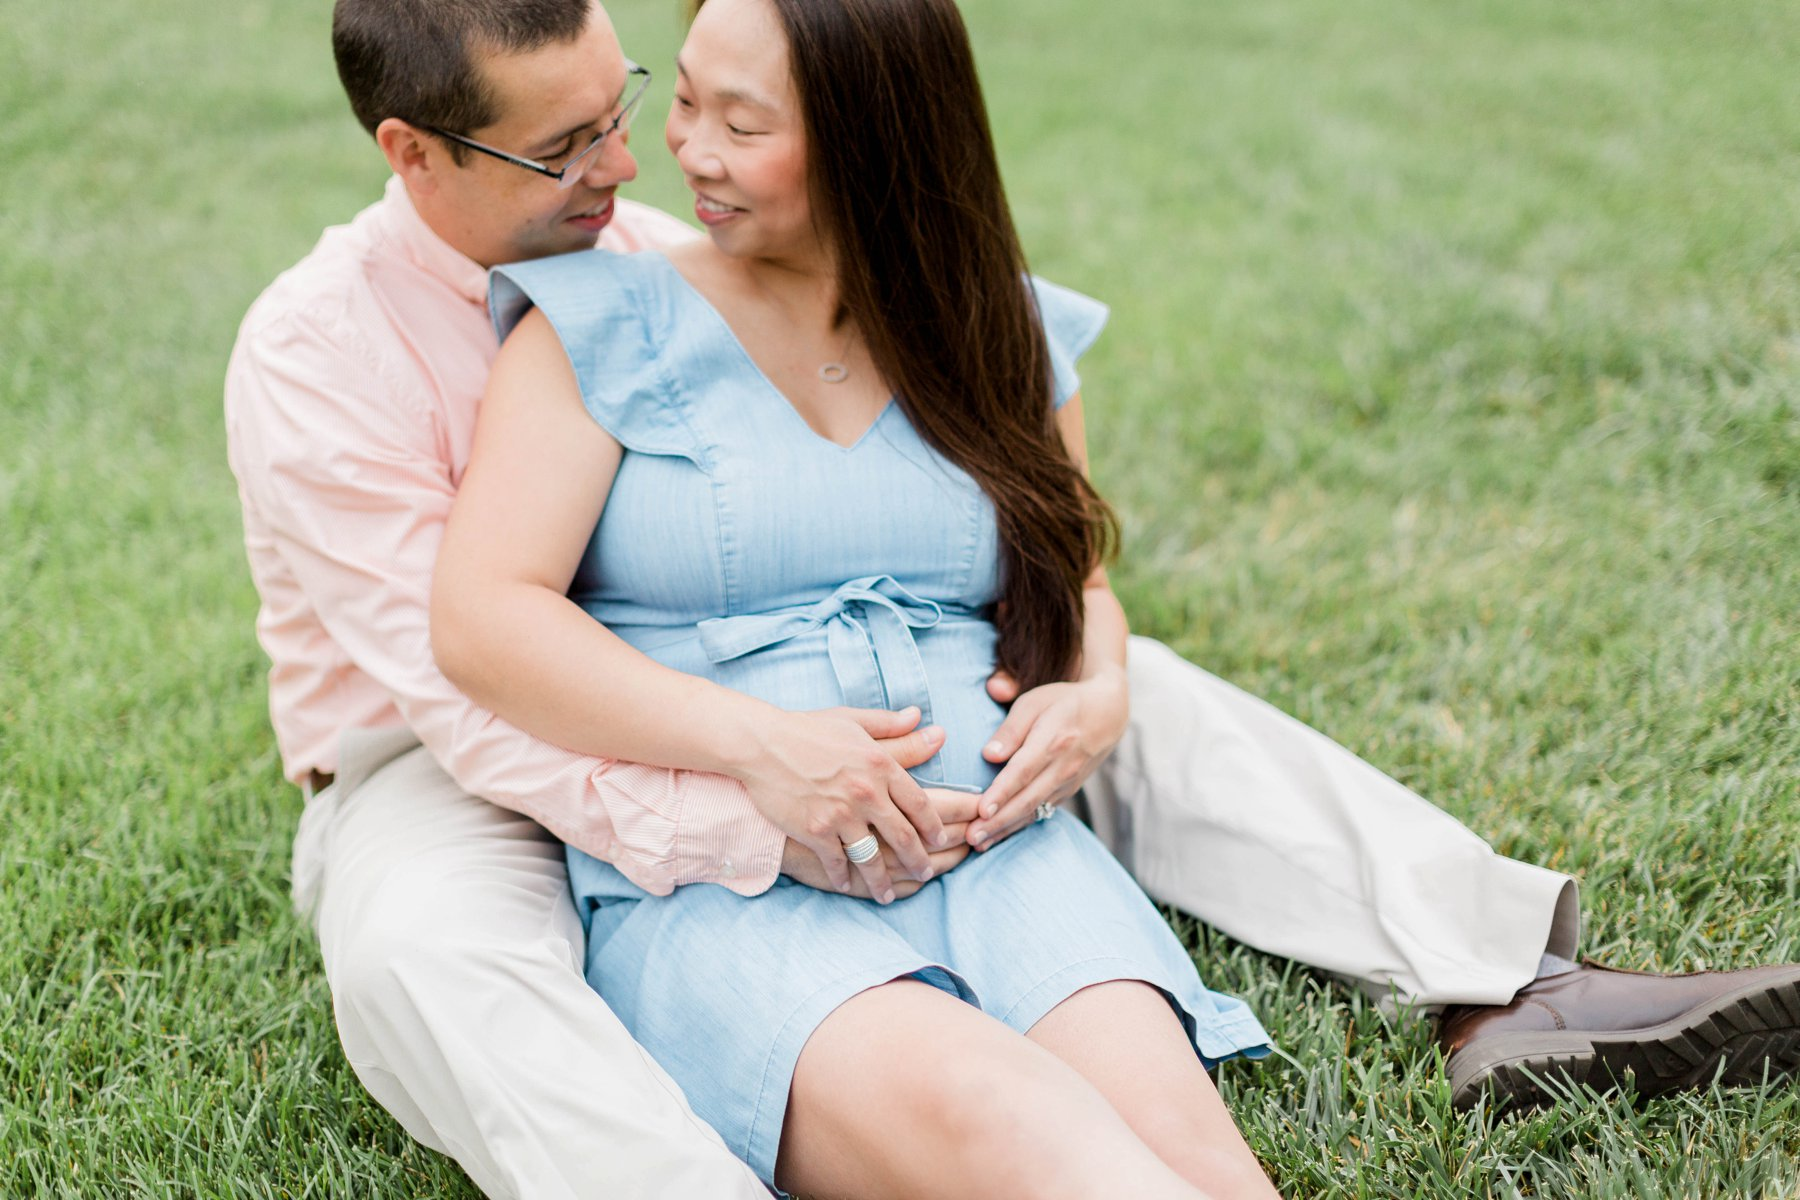 Longwood_Gardens_Maternity_Session_35